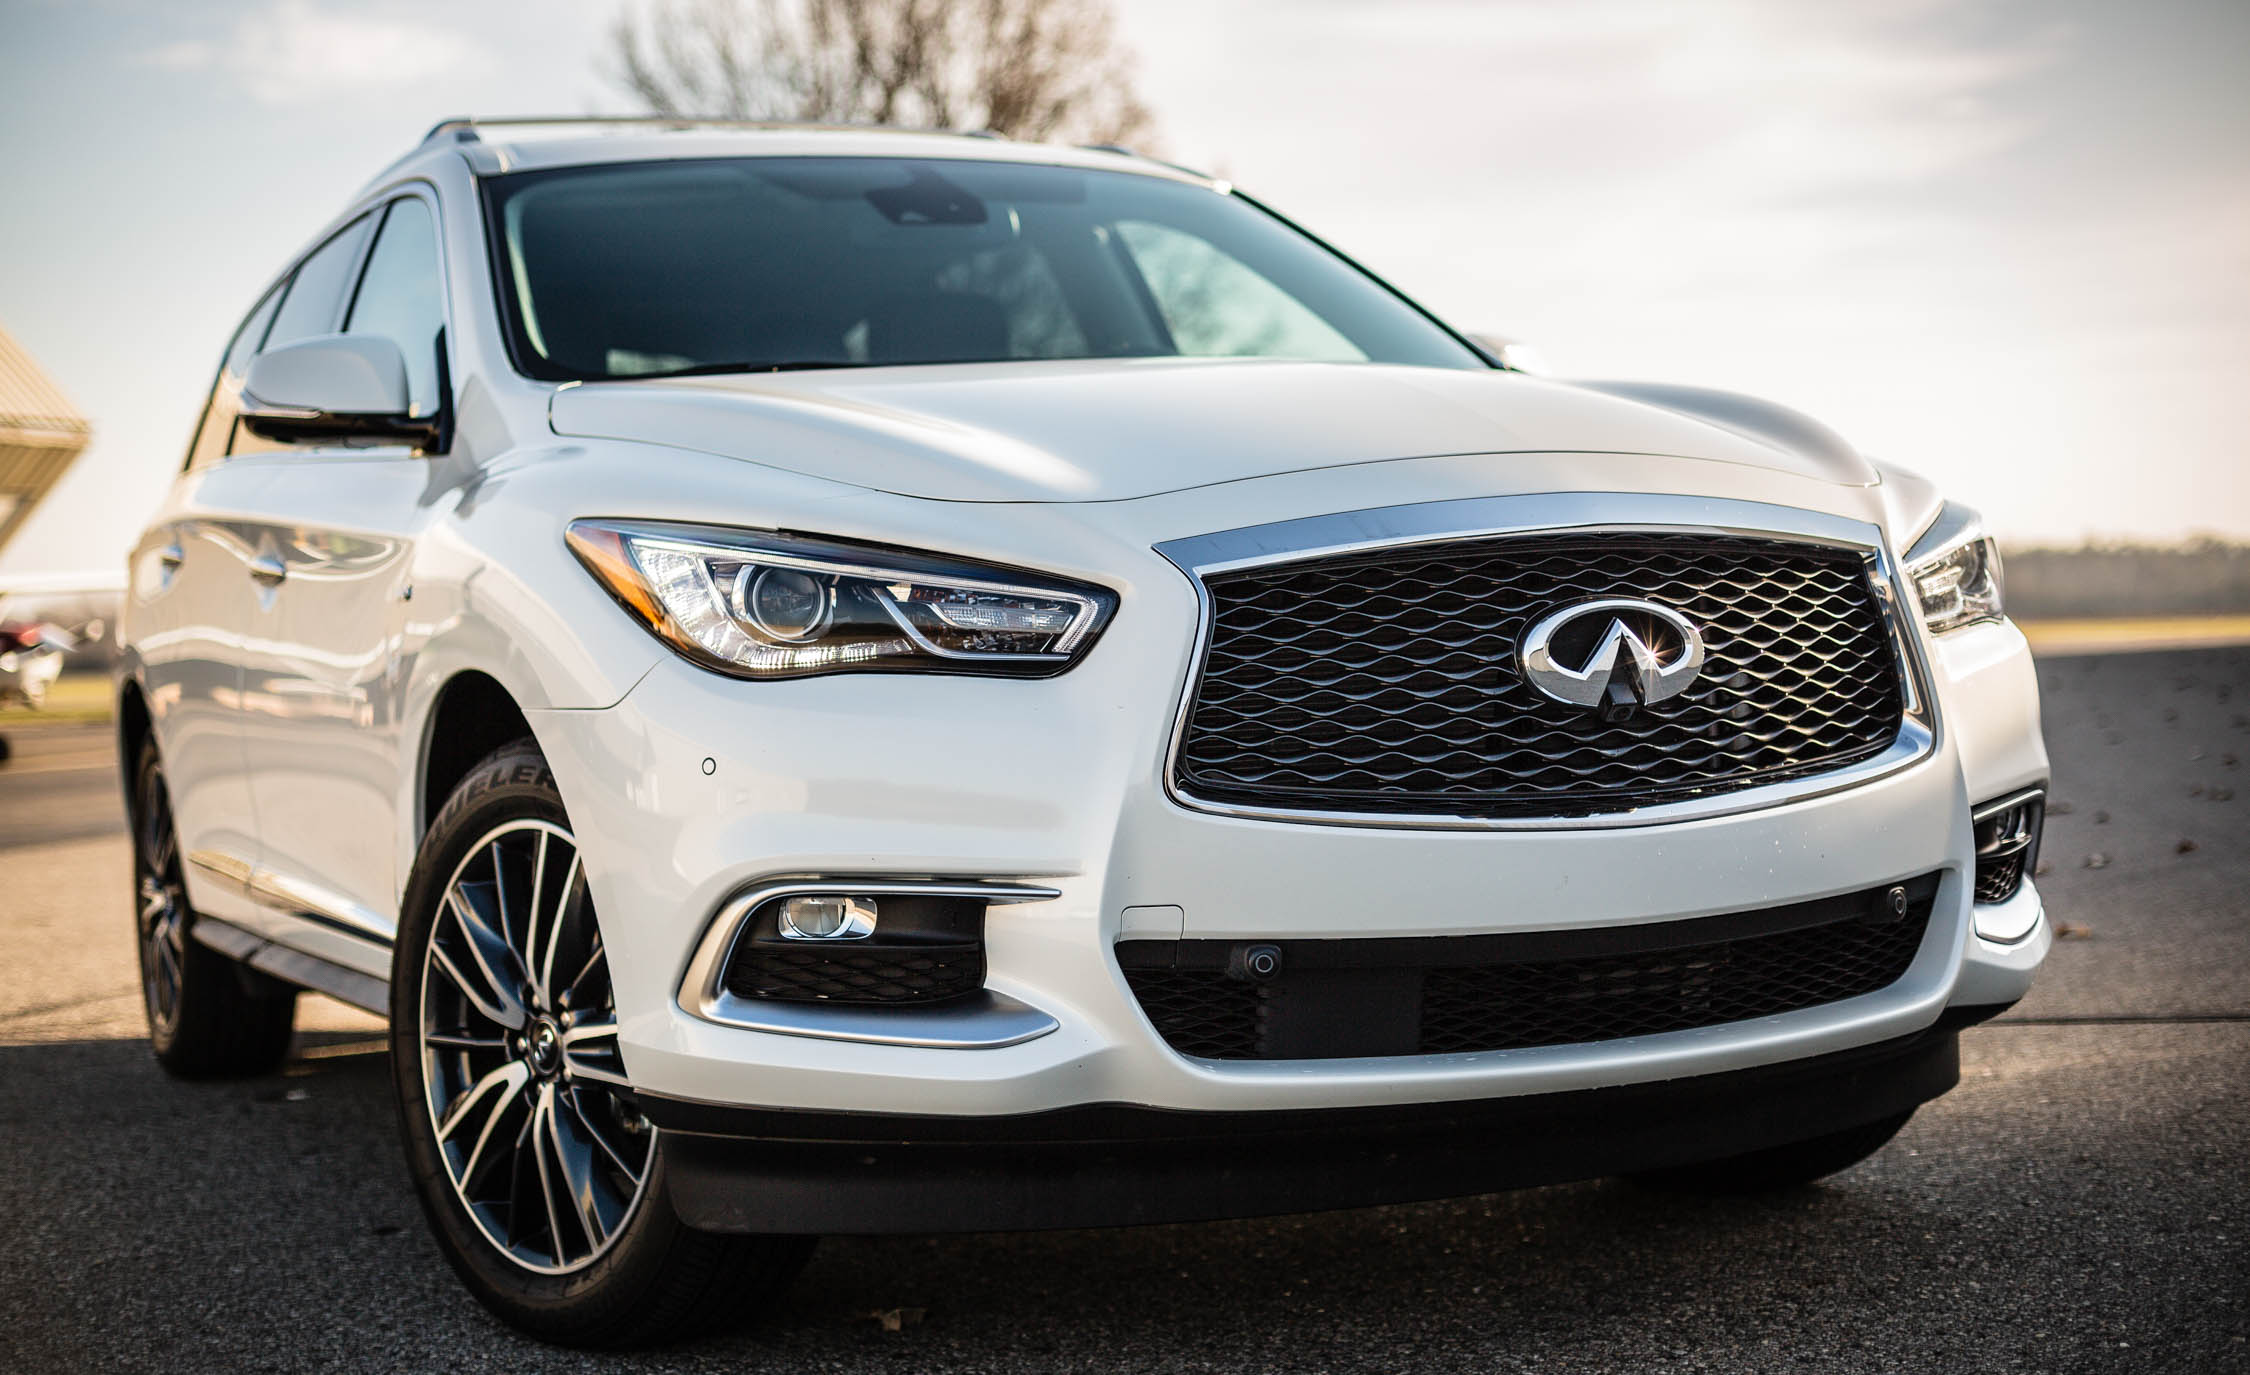 2017 Infiniti Qx60 White Exterior Front (View 10 of 12)